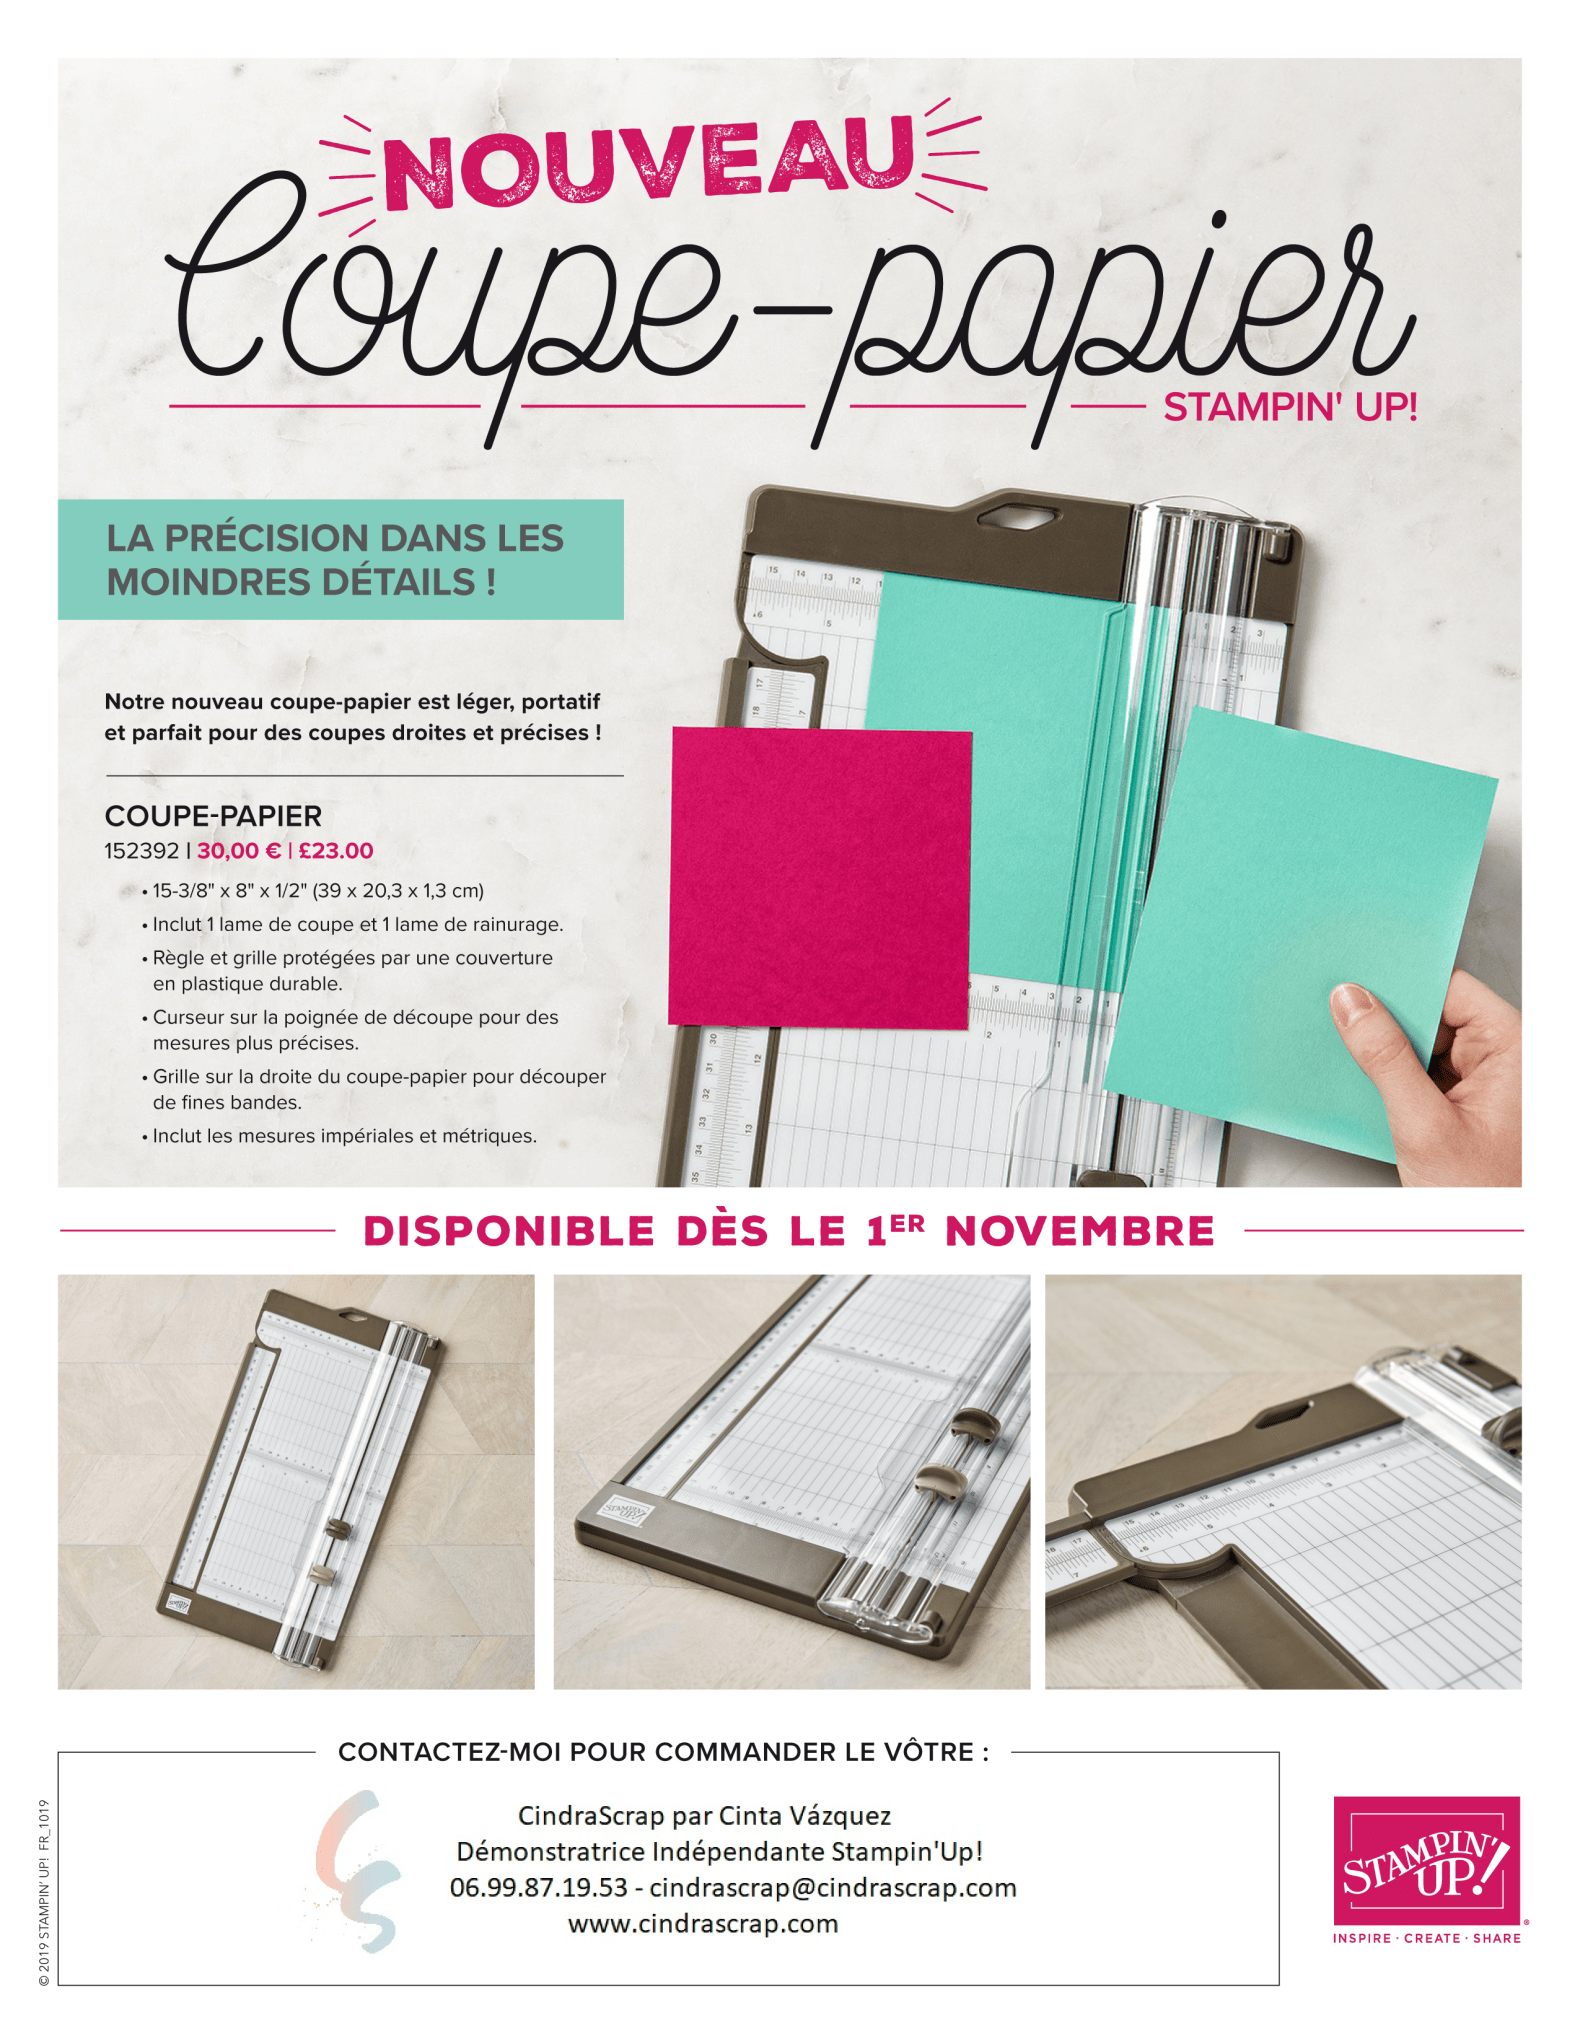 Coupe-papier Stampin'Up!